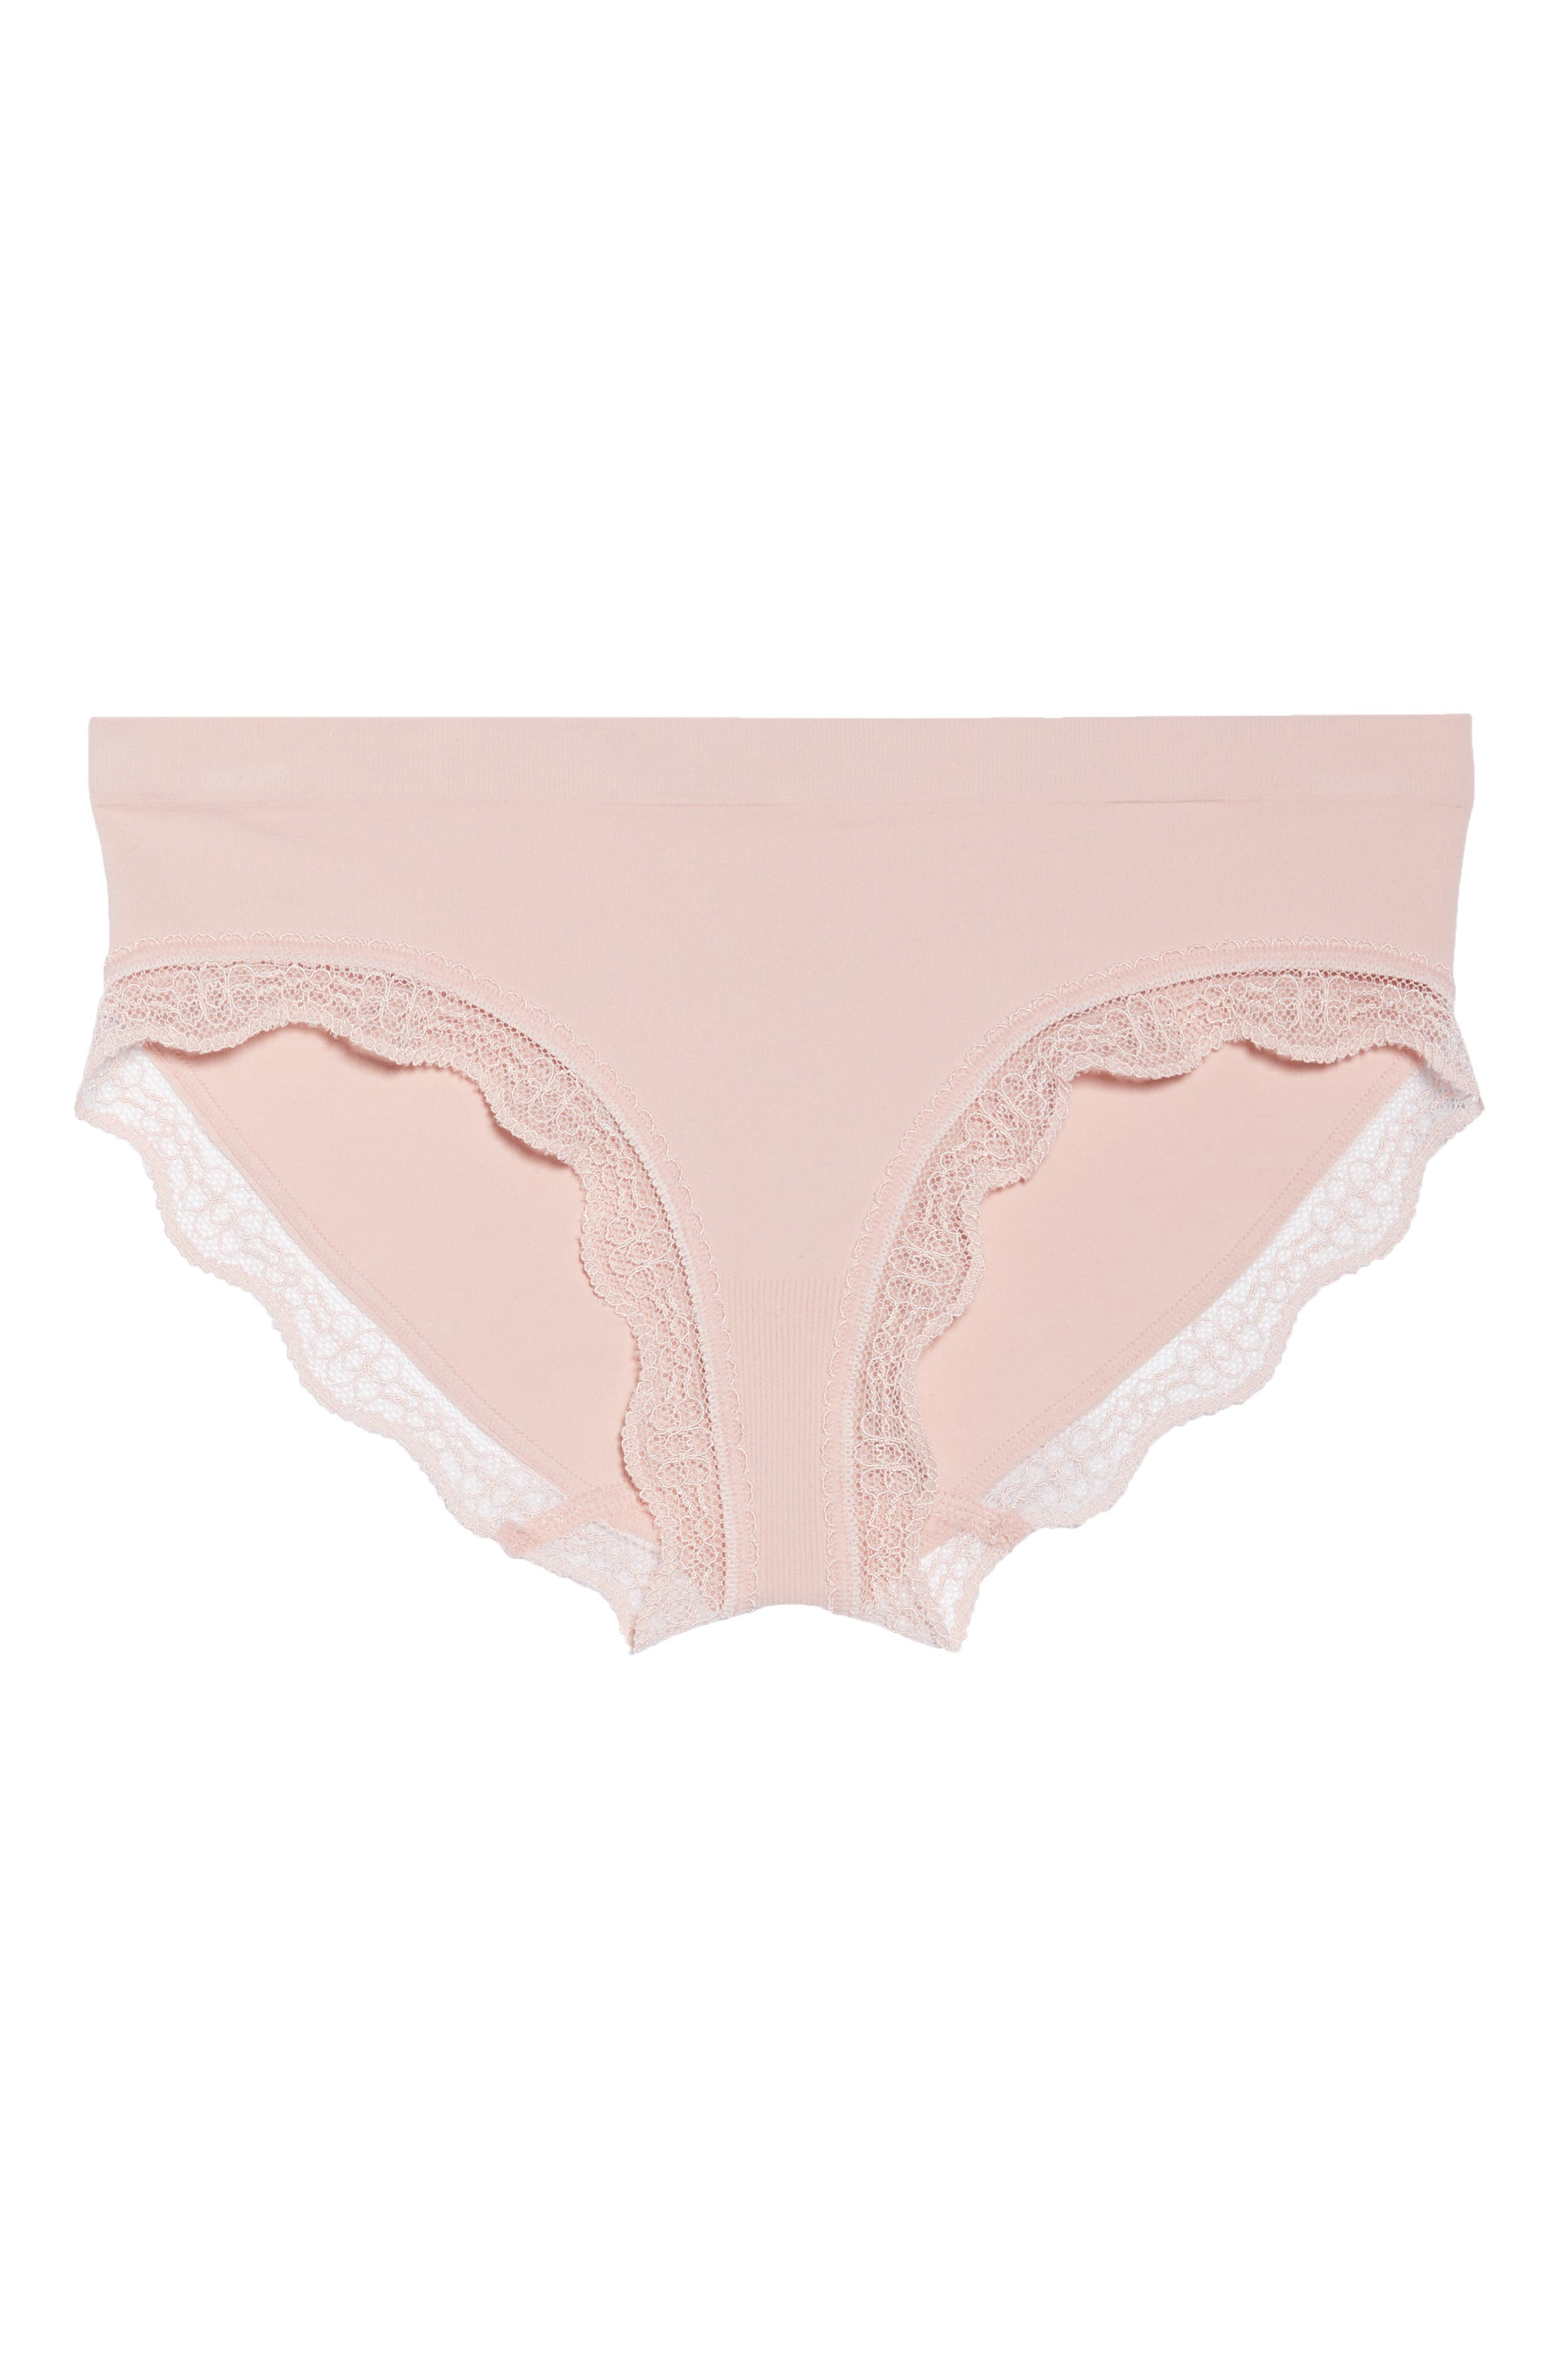 Lace Trim Seamless Hipster Briefs,                             Alternate thumbnail 6, color,                             Pink Silver